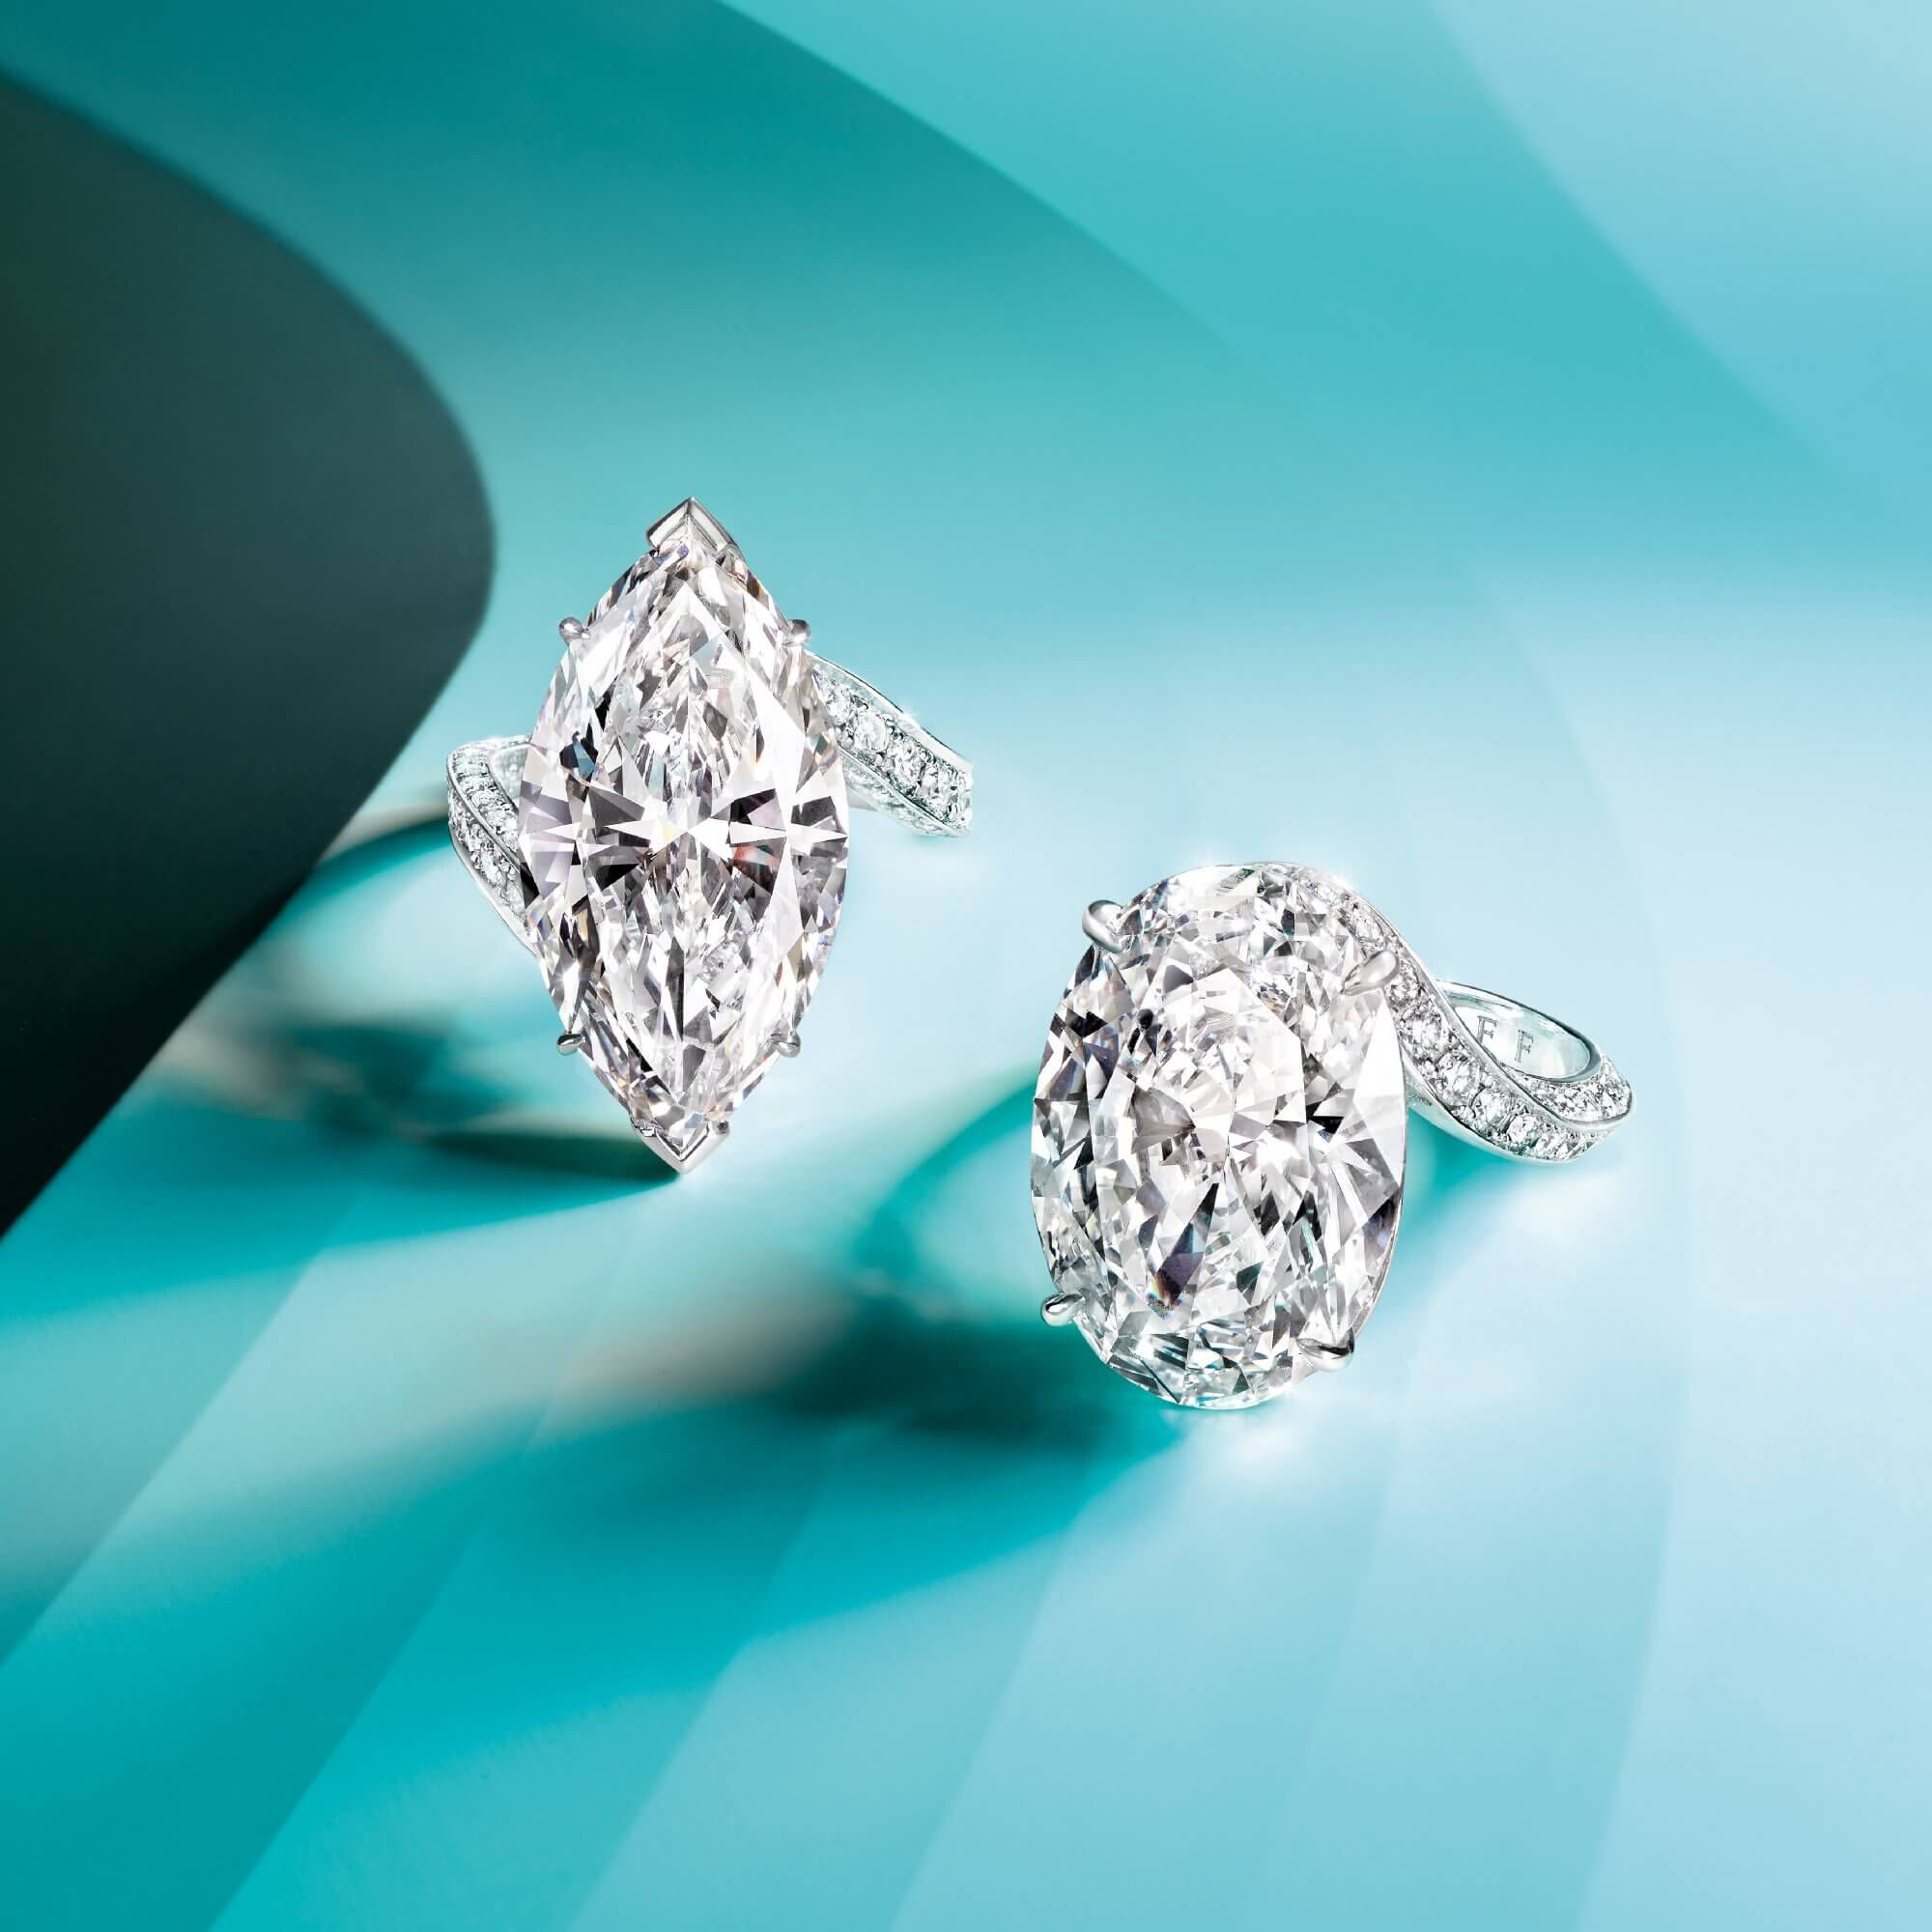 Two Graff diamond rings featuring a marquise shape diamond and an oval shape diamond respectively